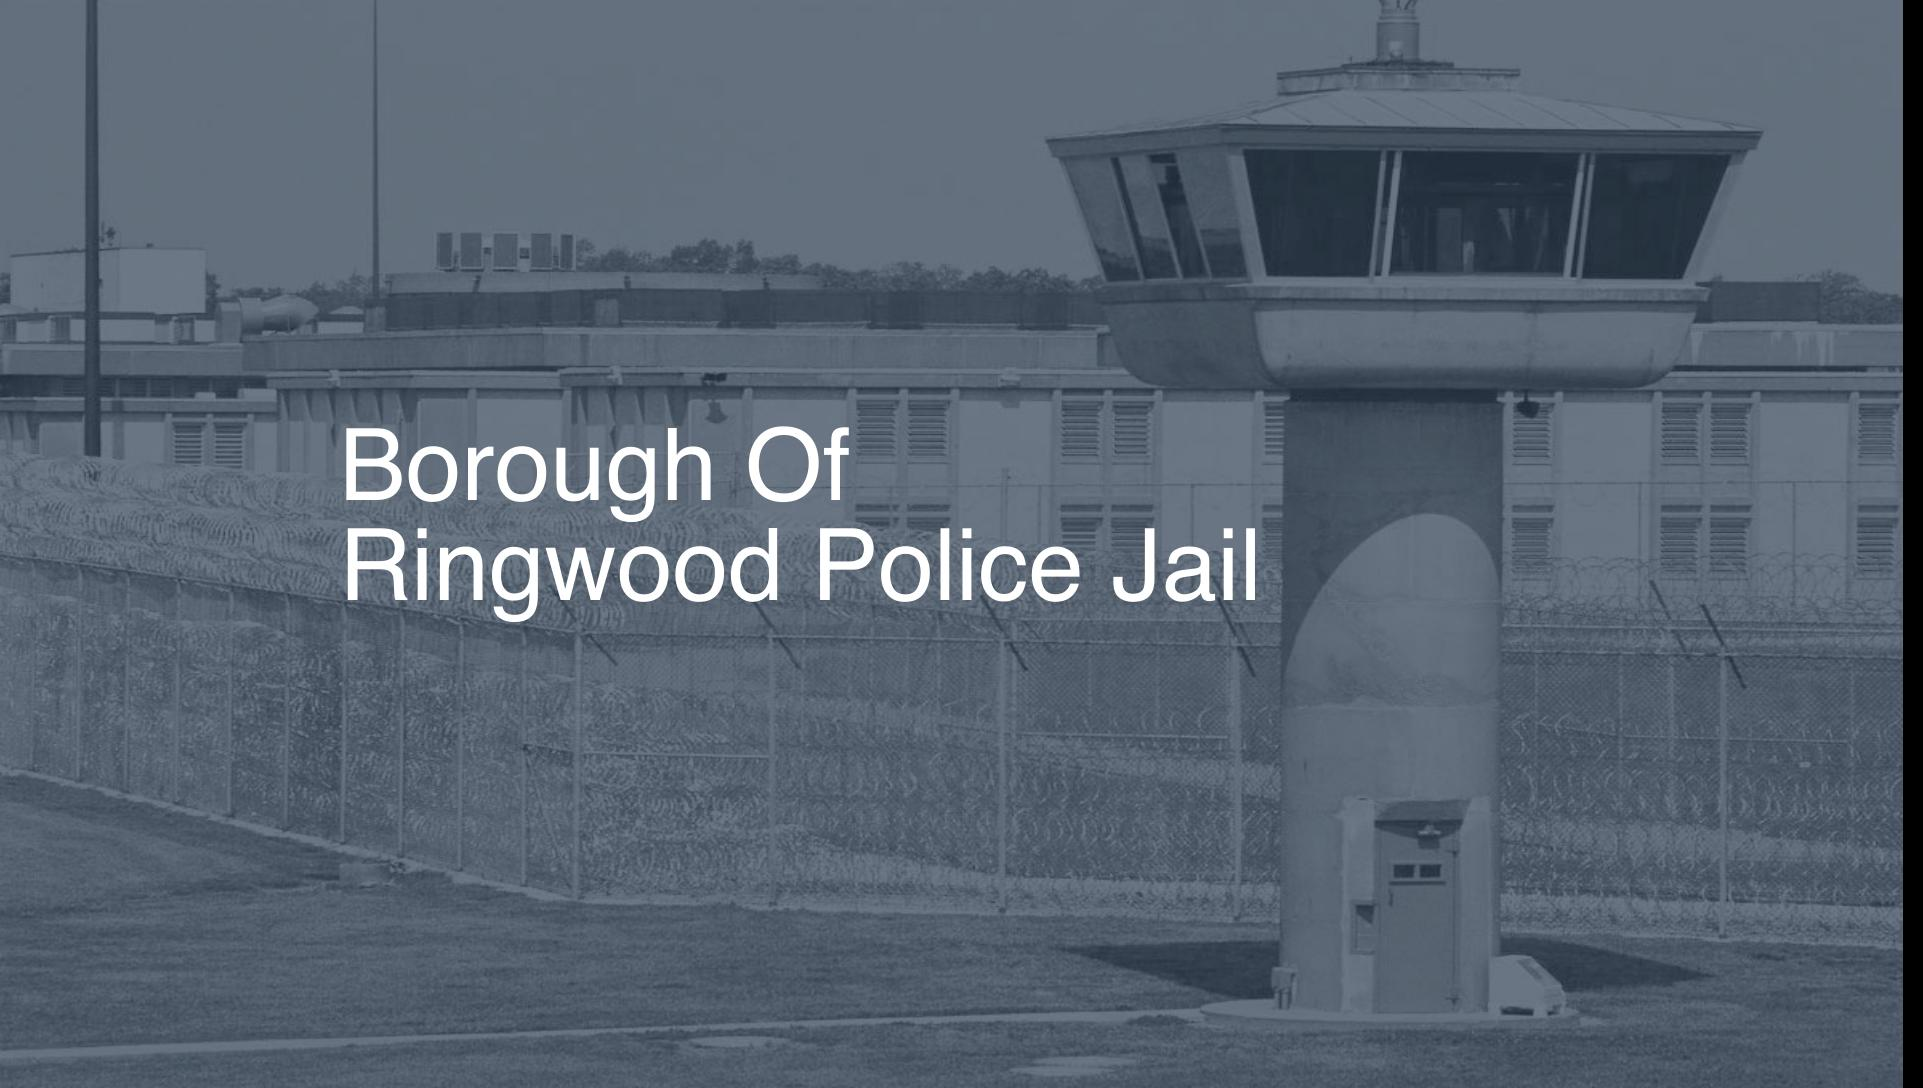 Borough of Ringwood Police Jail correctional facility picture